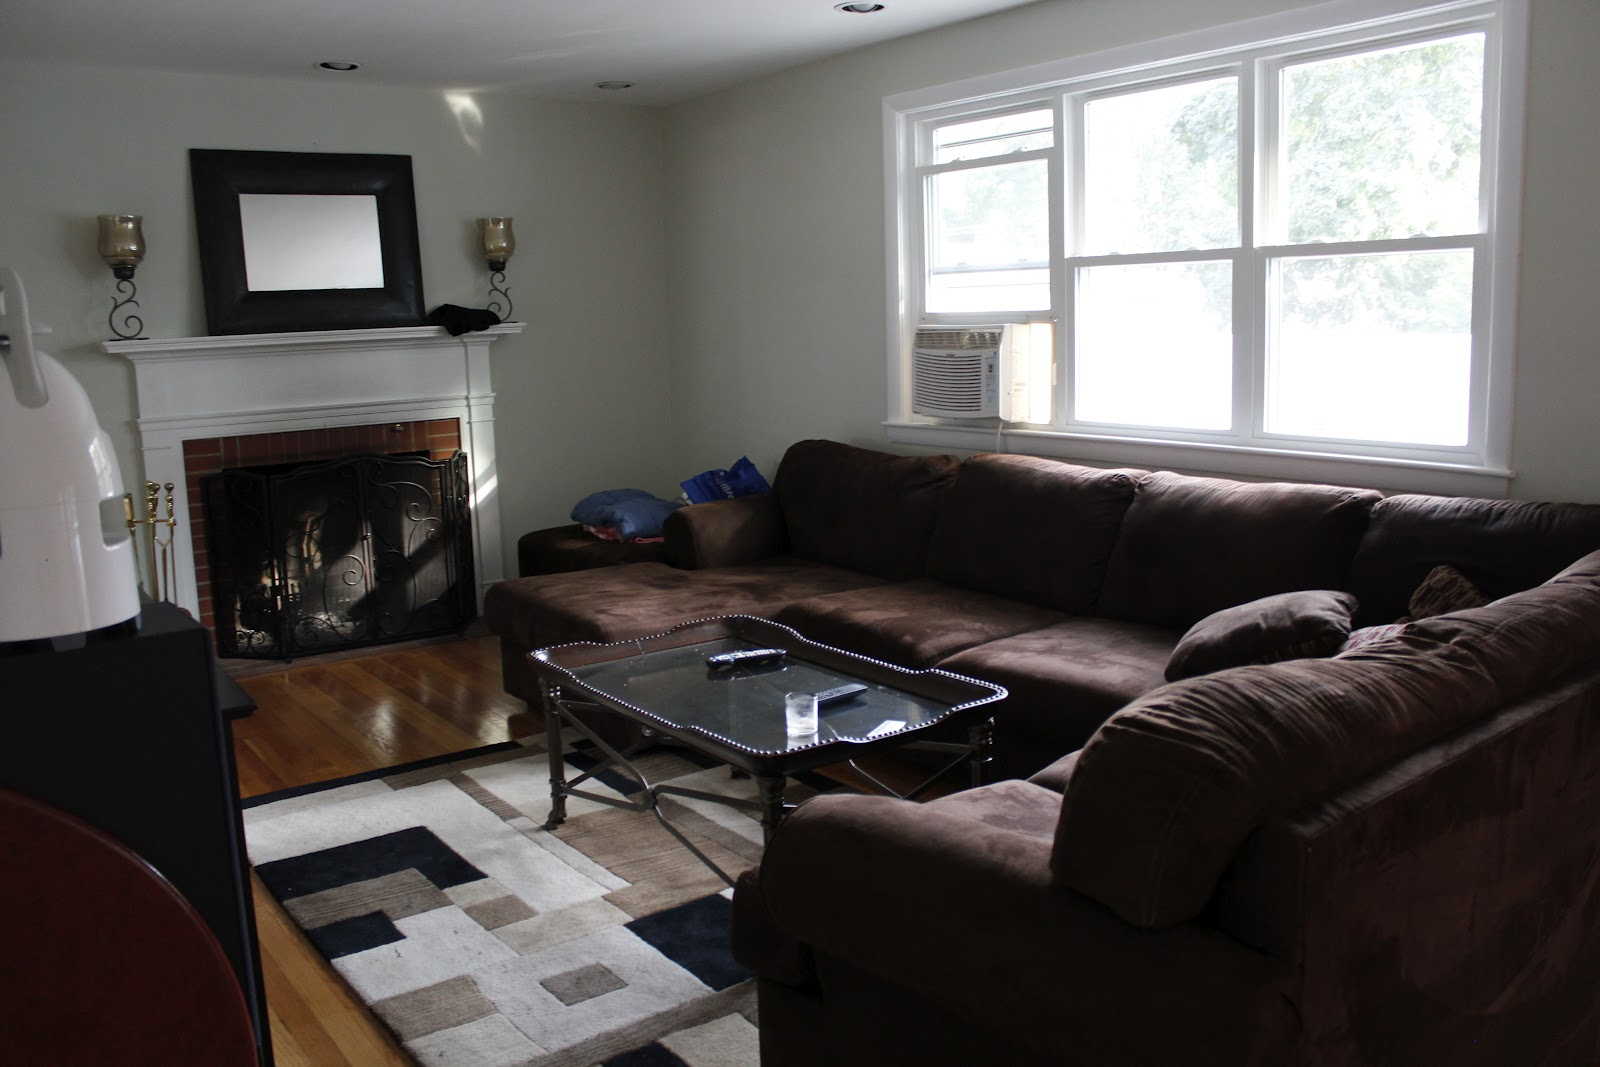 Http Ouryellowlovenest Blogspot Com 2012 09 My Brother In Laws Living Room Redo Html